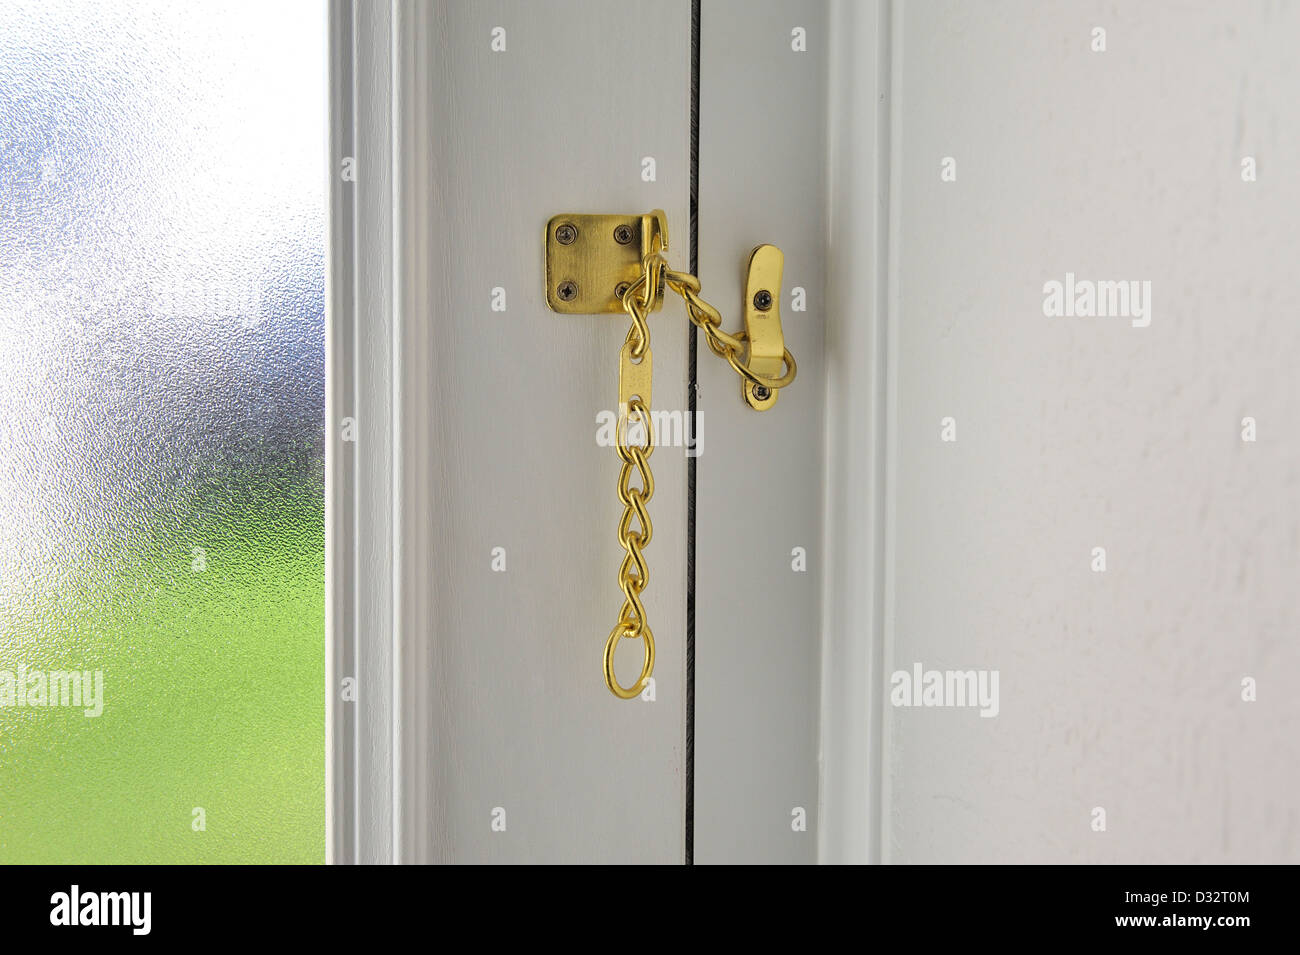 Door Safety Chain Fitted For Extra Security   Stock Image